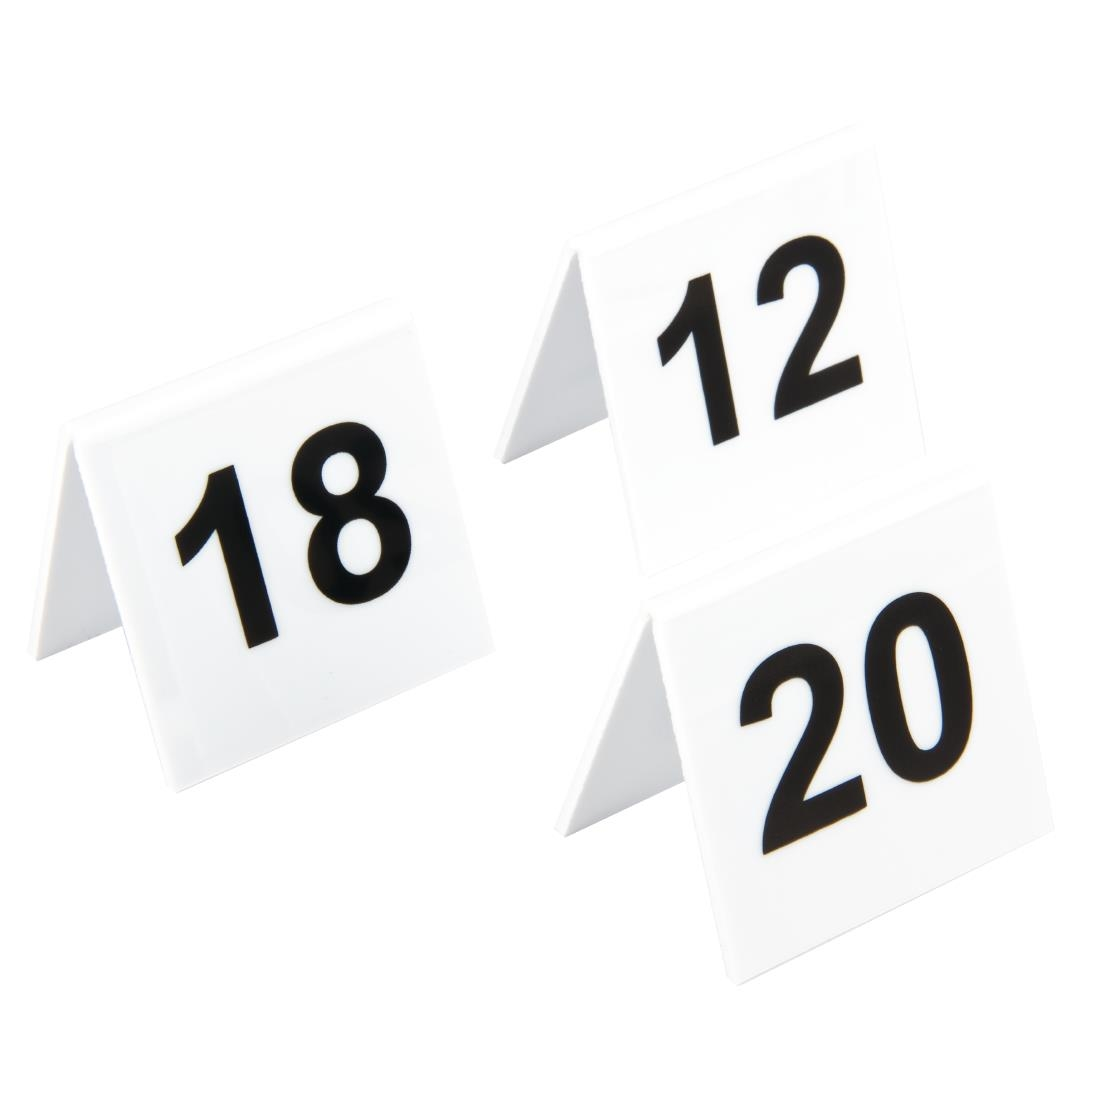 Plastic Table Numbers 11 20 L982 Buy Online At Nisbets